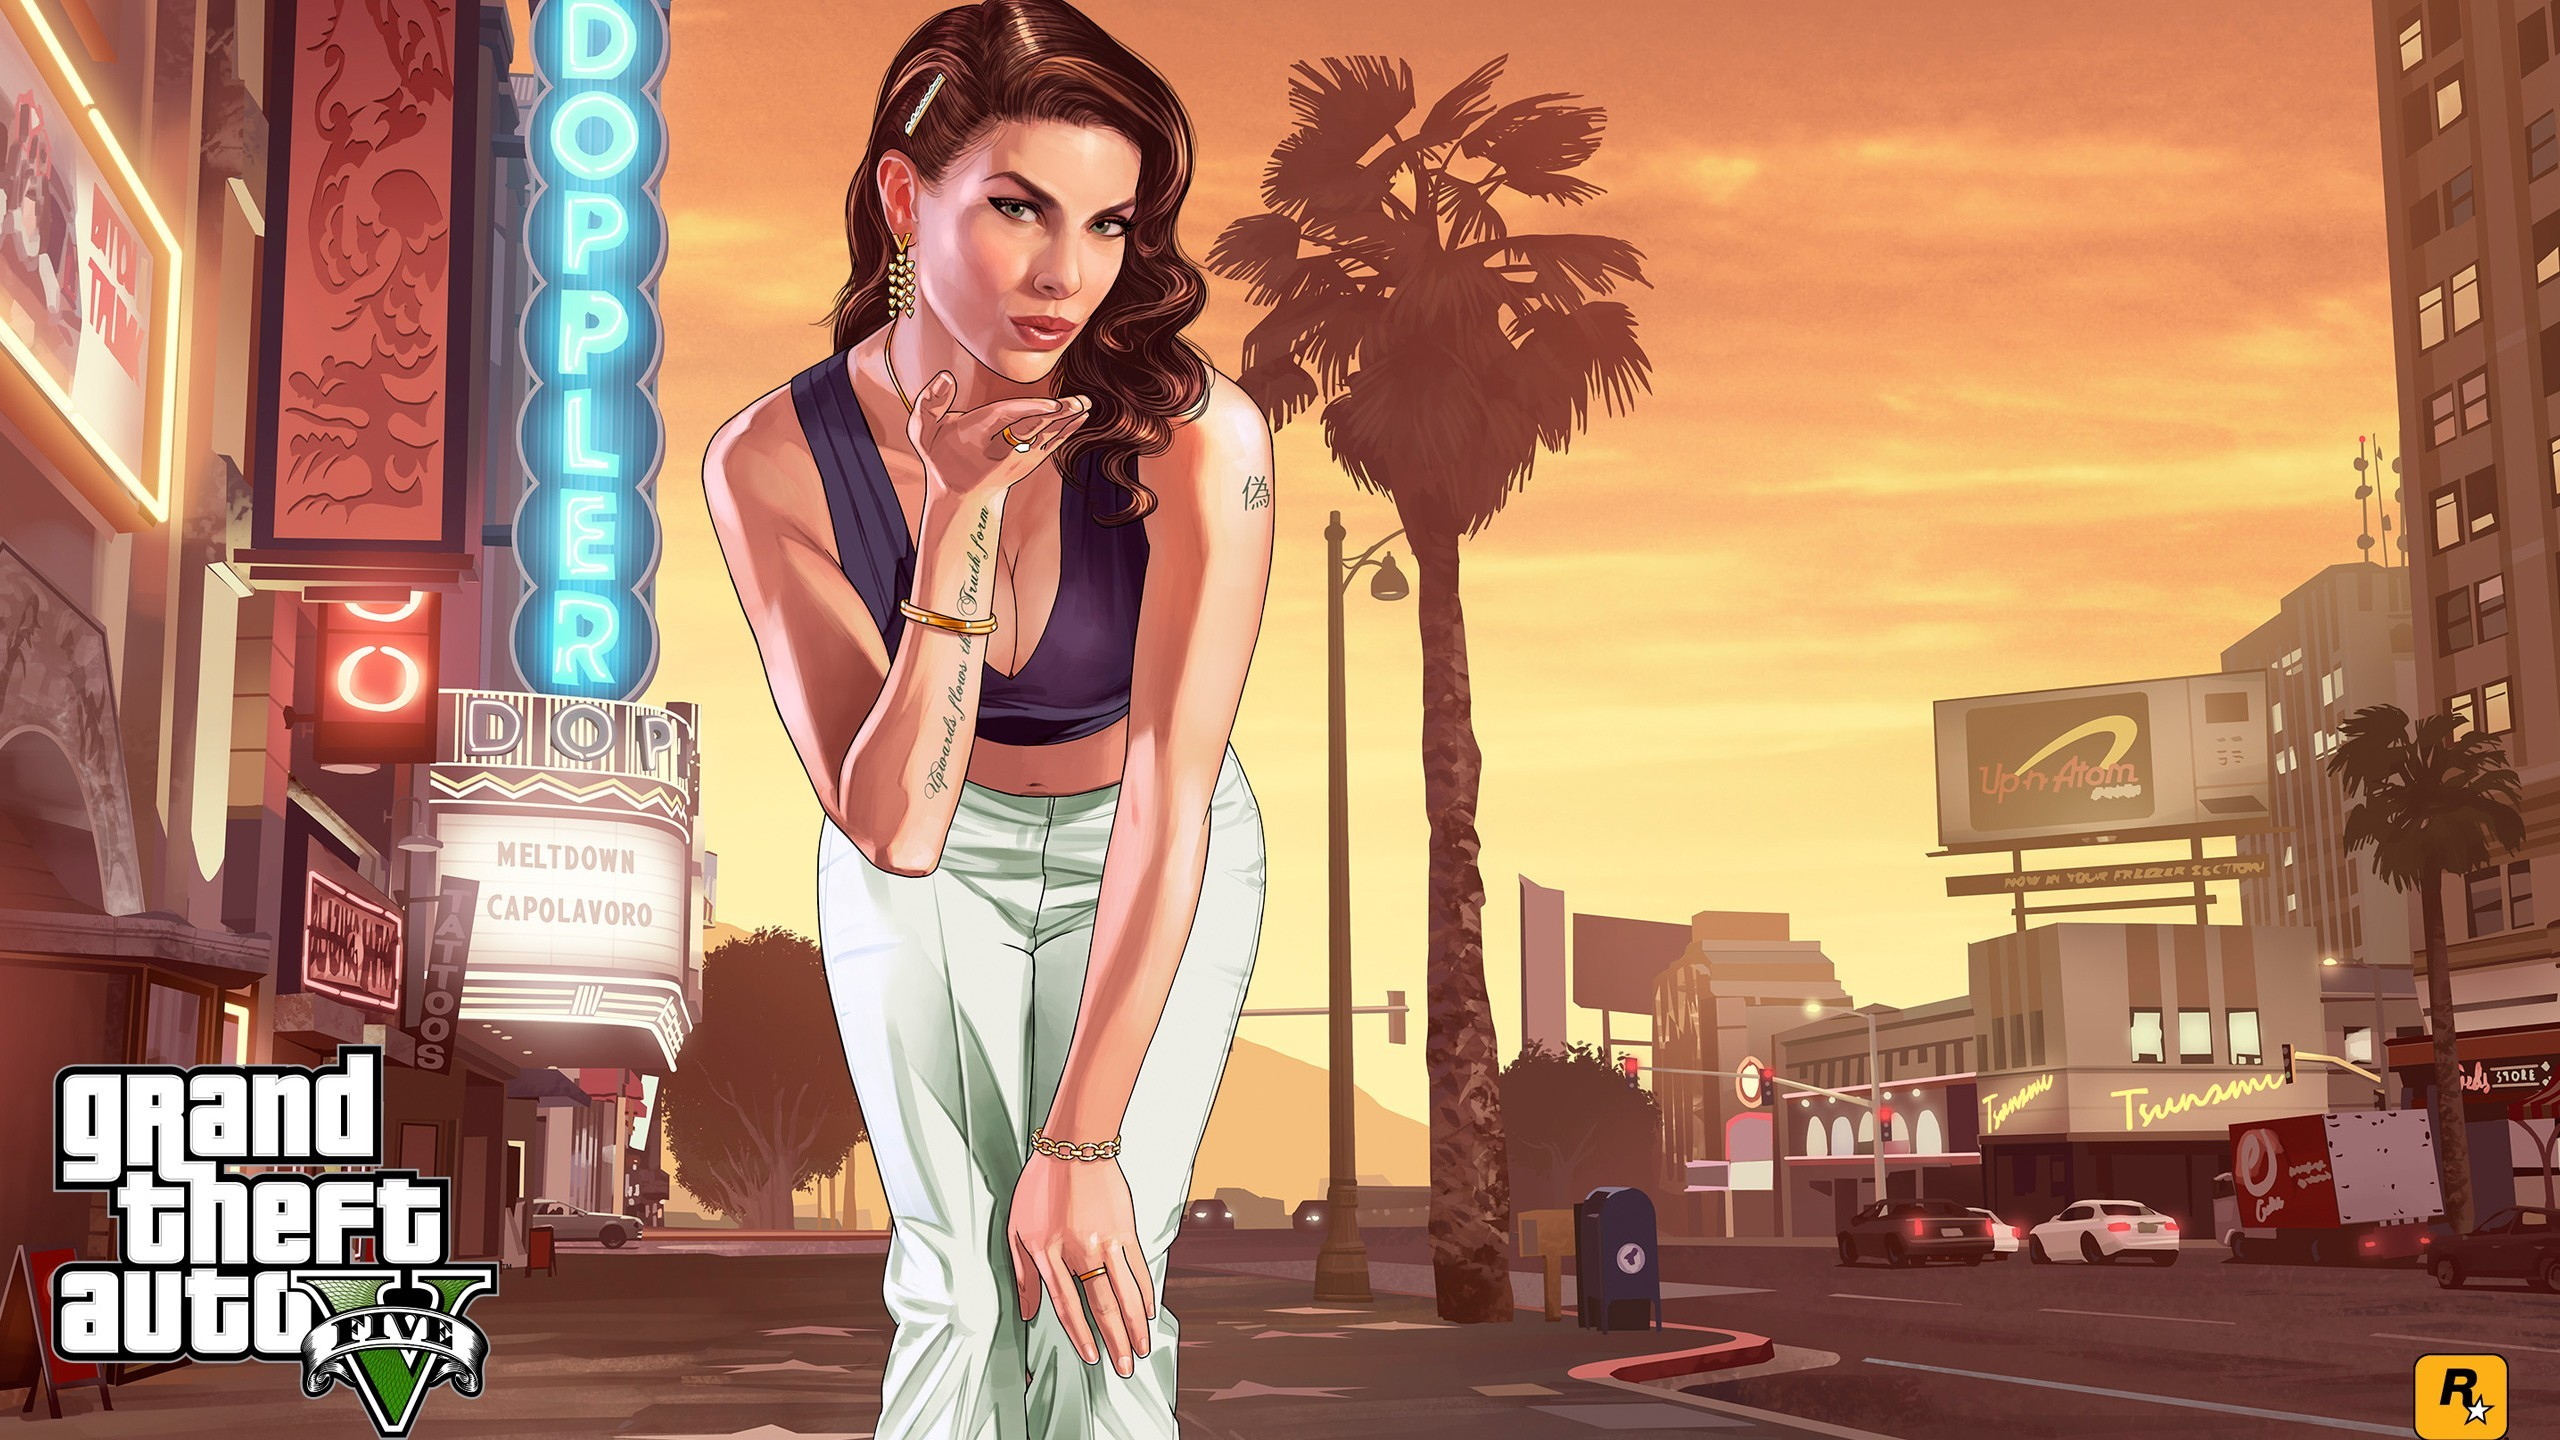 X Wallpaper Gta Collection For Free Download Hd Wallpapers Pinterest Hd Wallpaper Wallpaper And Wallpaper Backgrounds